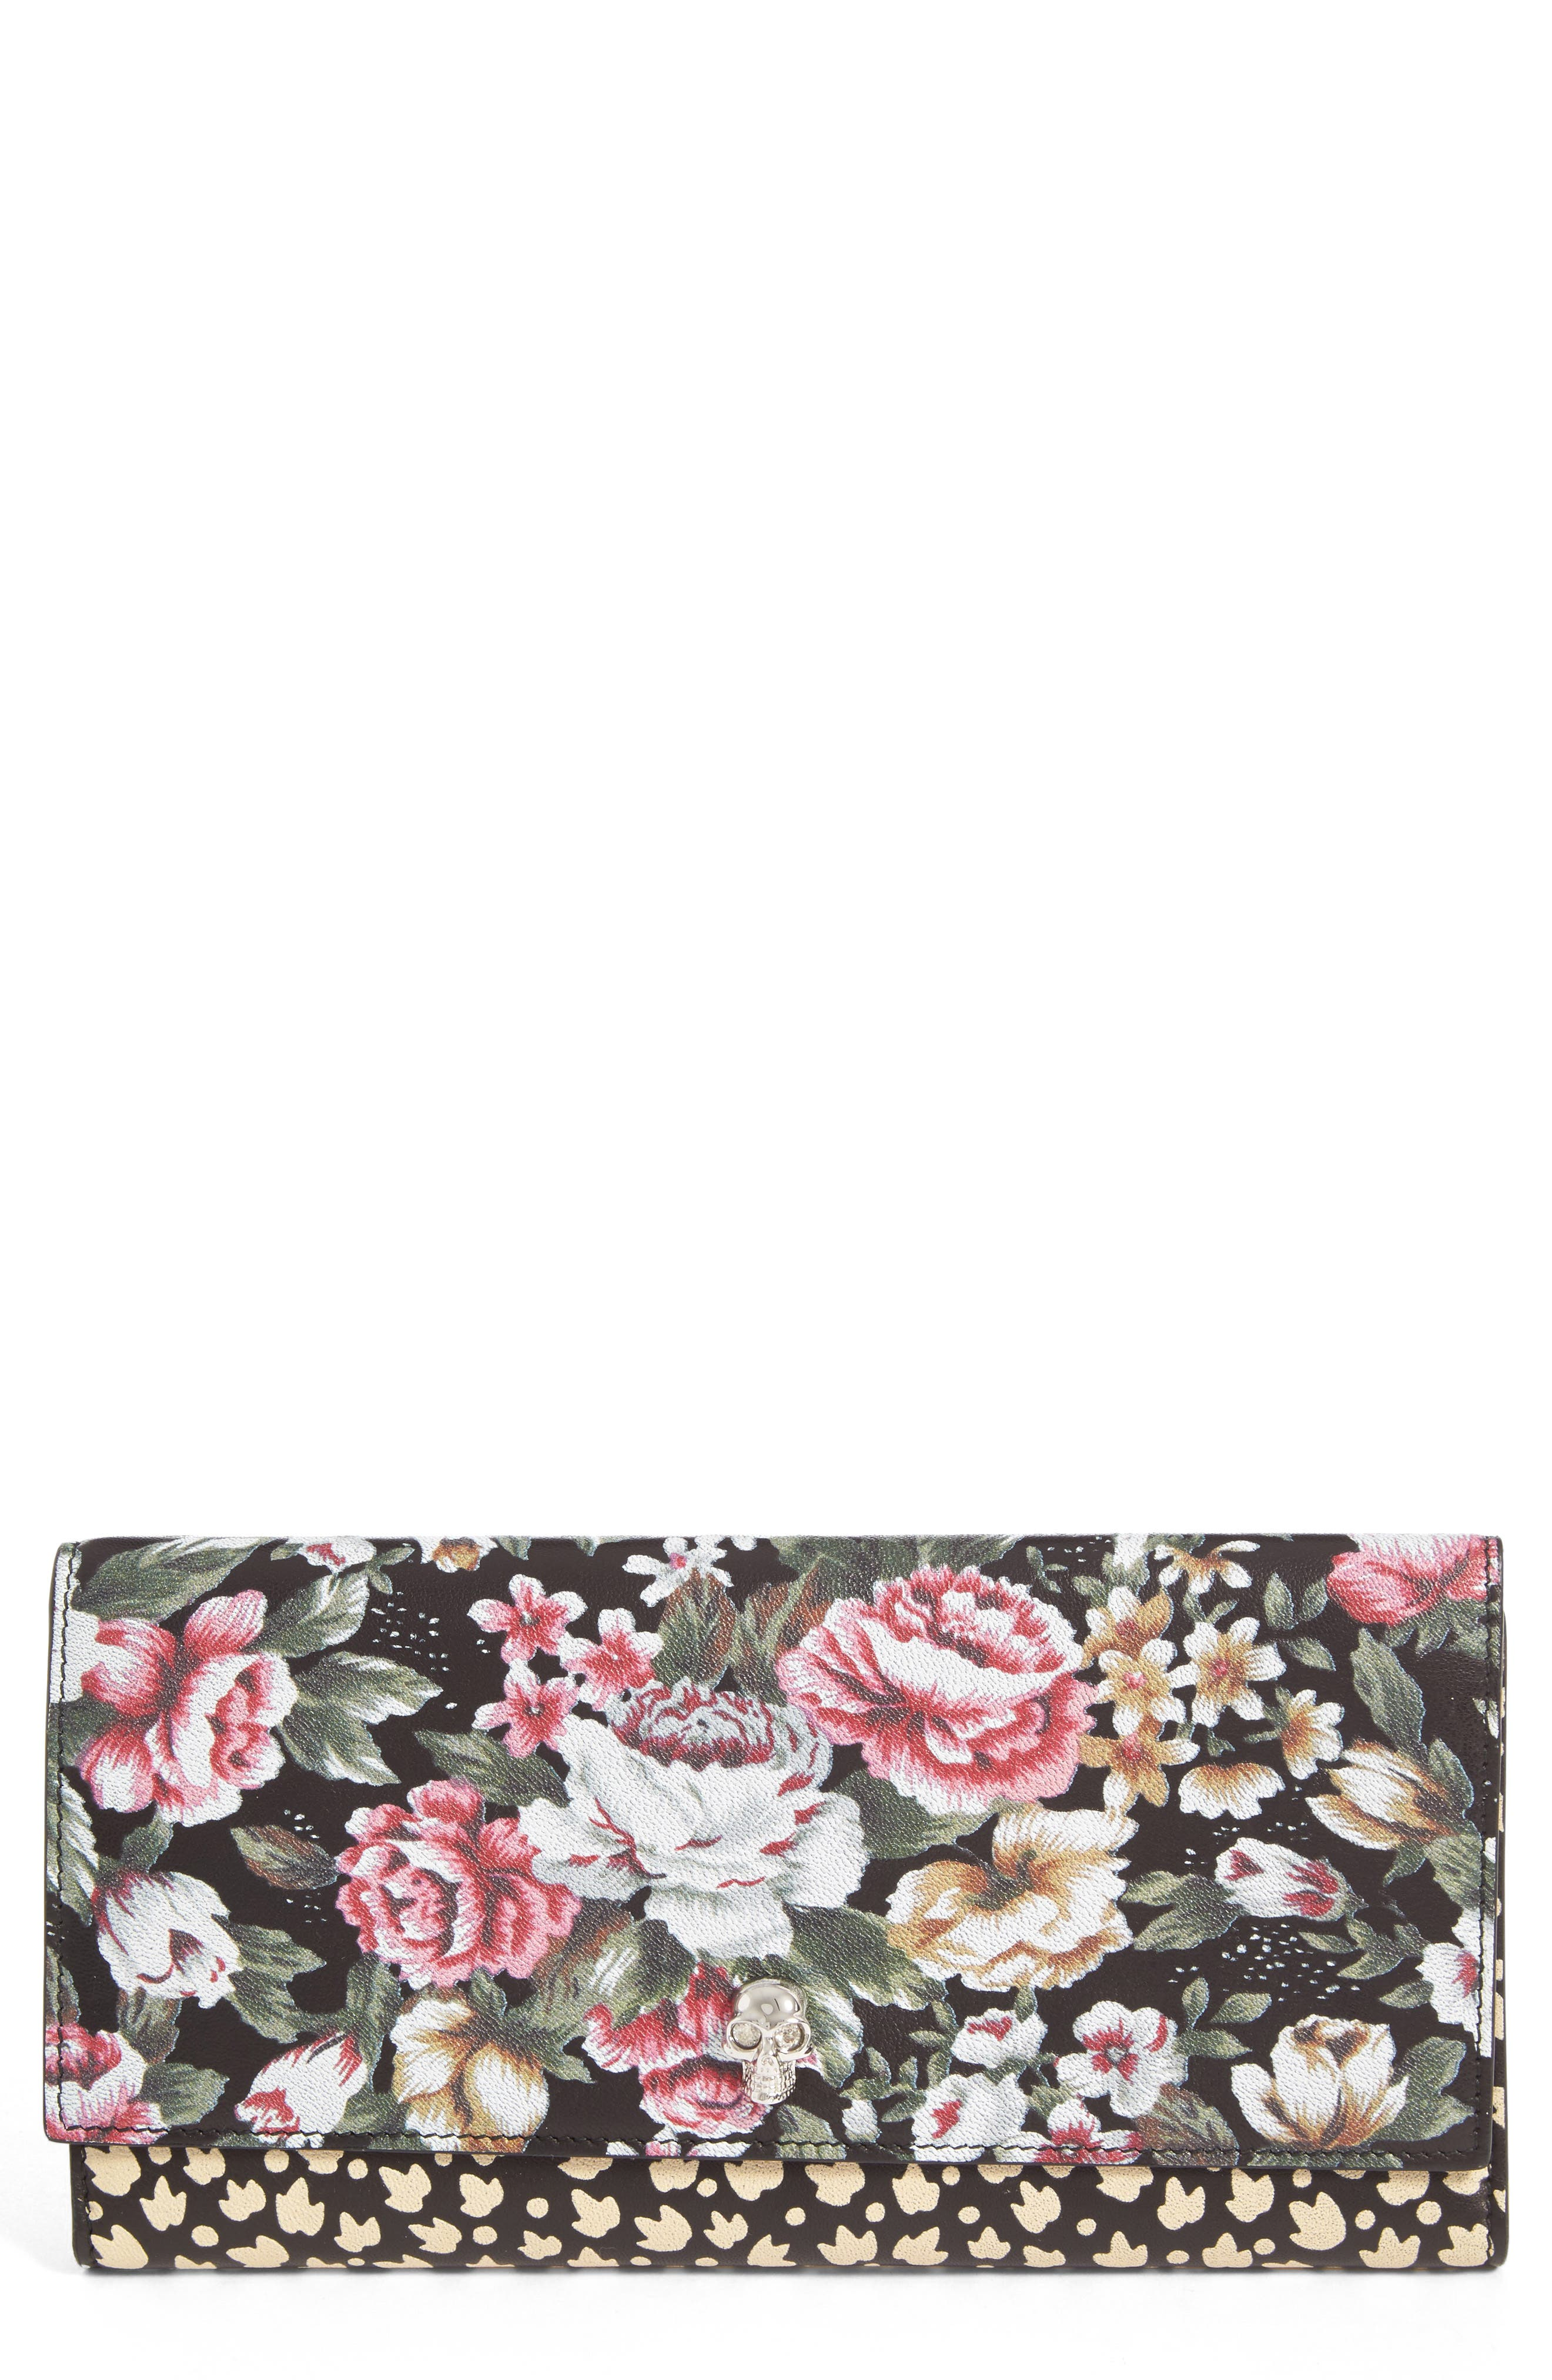 ALEXANDER MCQUEEN Floral Leather Wallet